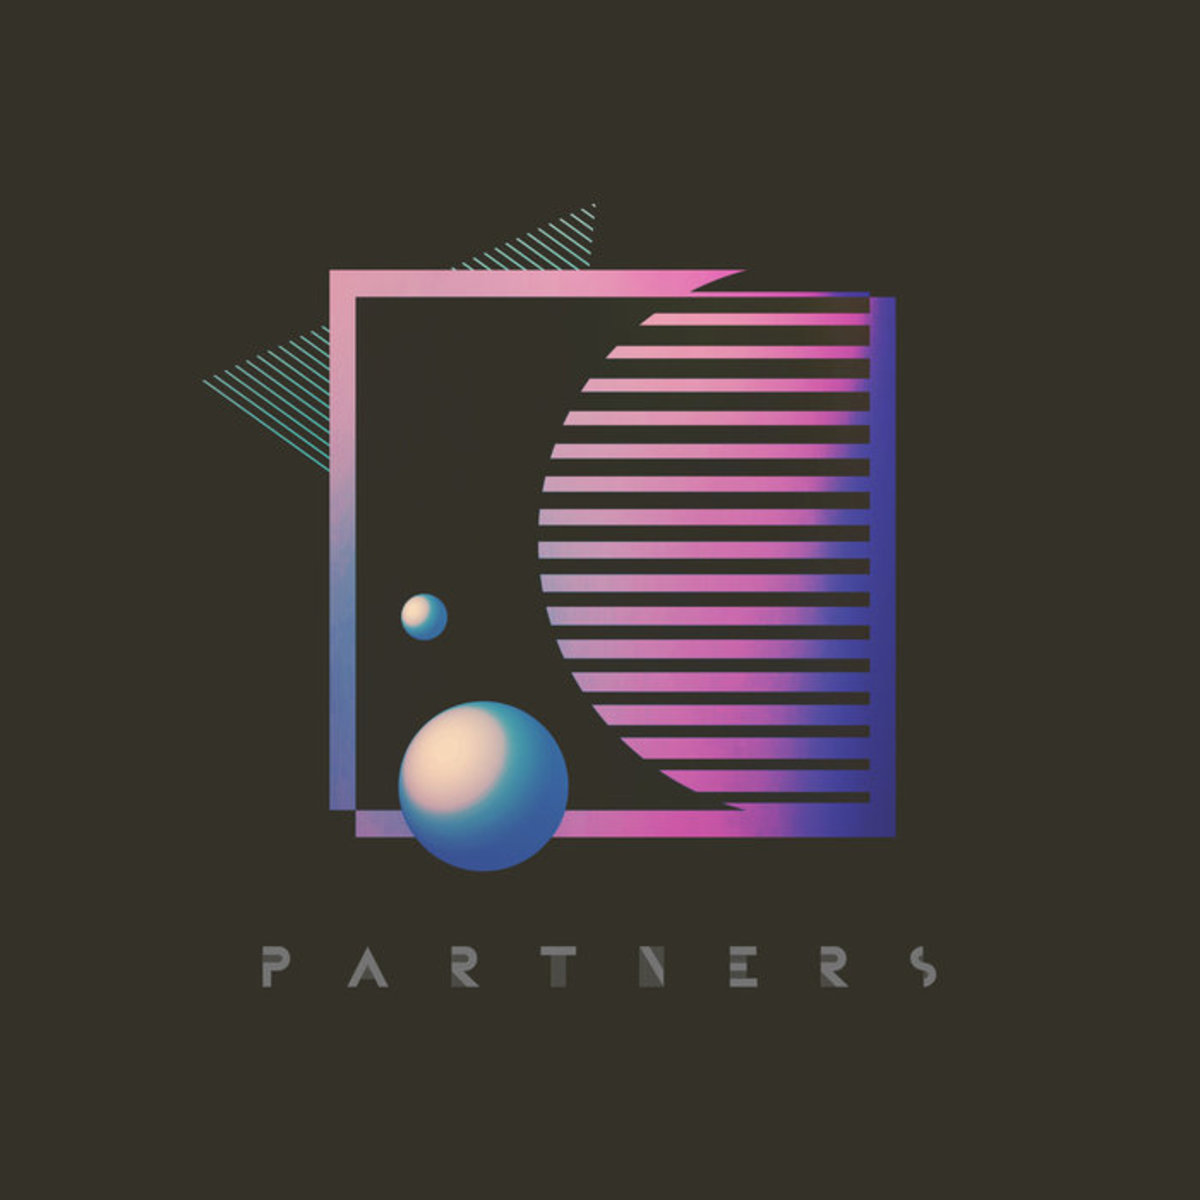 synth-album-review-partners-by-soul-craft-and-polyglot